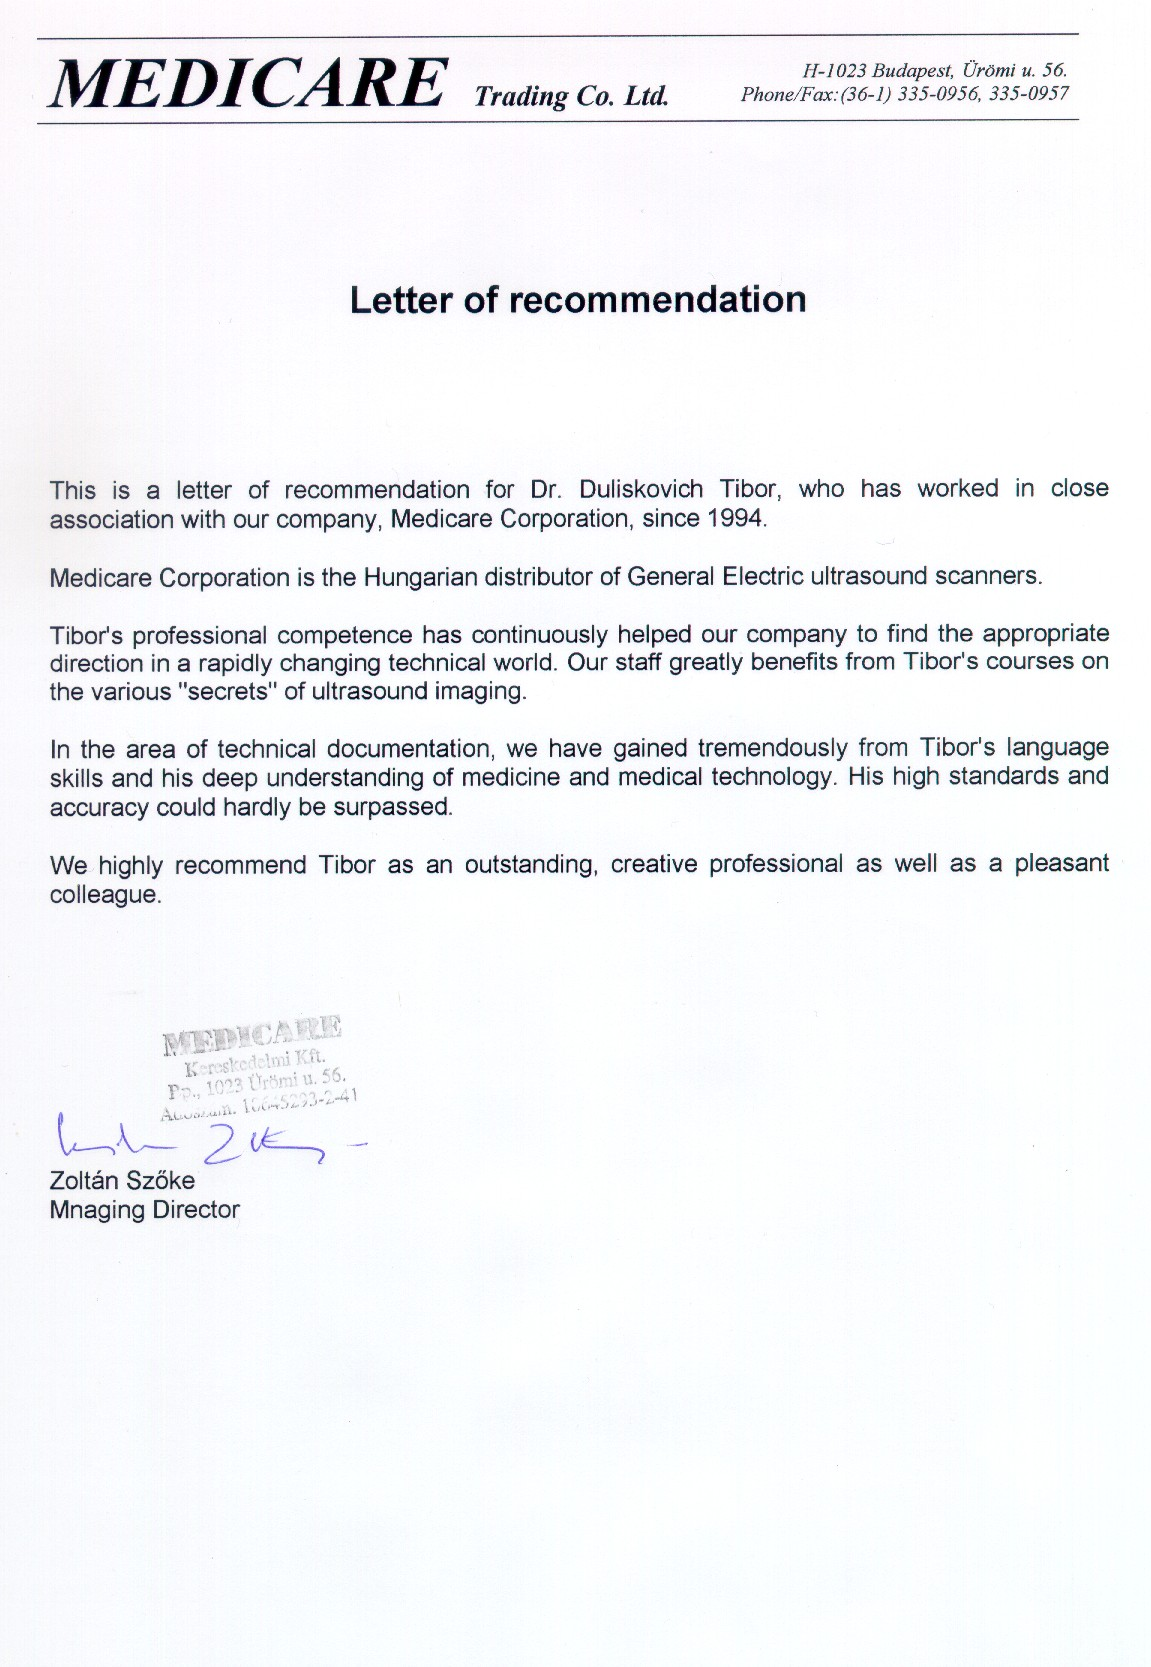 doctors letters templates - recommendation letter medical doctor templates free